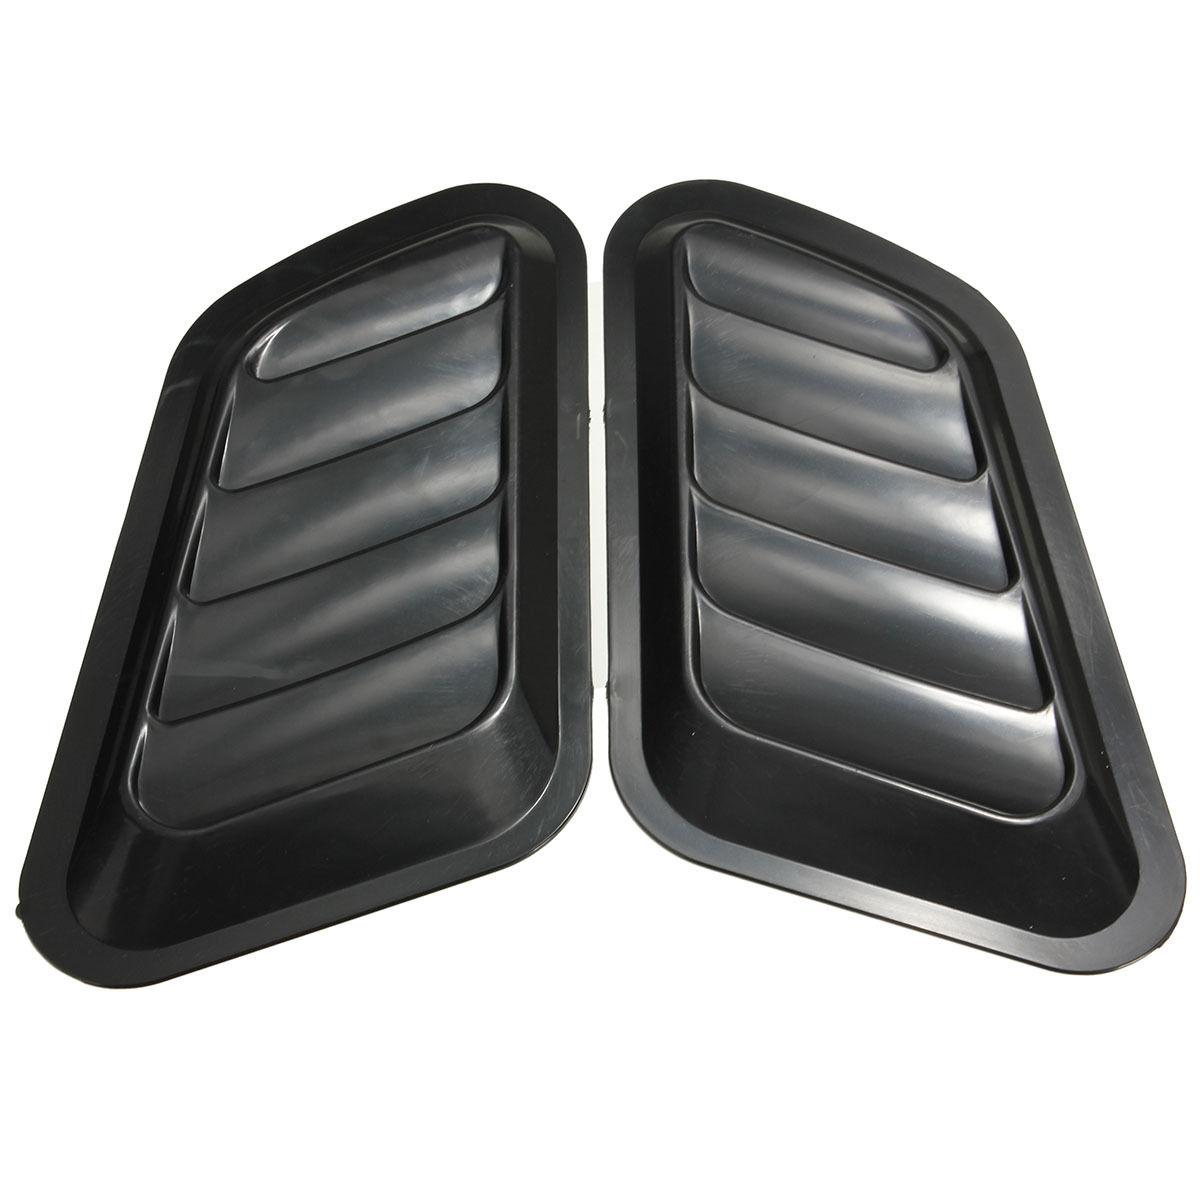 1 Pair Car Air Flow Intake Scoop Turbo Bonnet Vent Cover Hood Fender Gray/Black